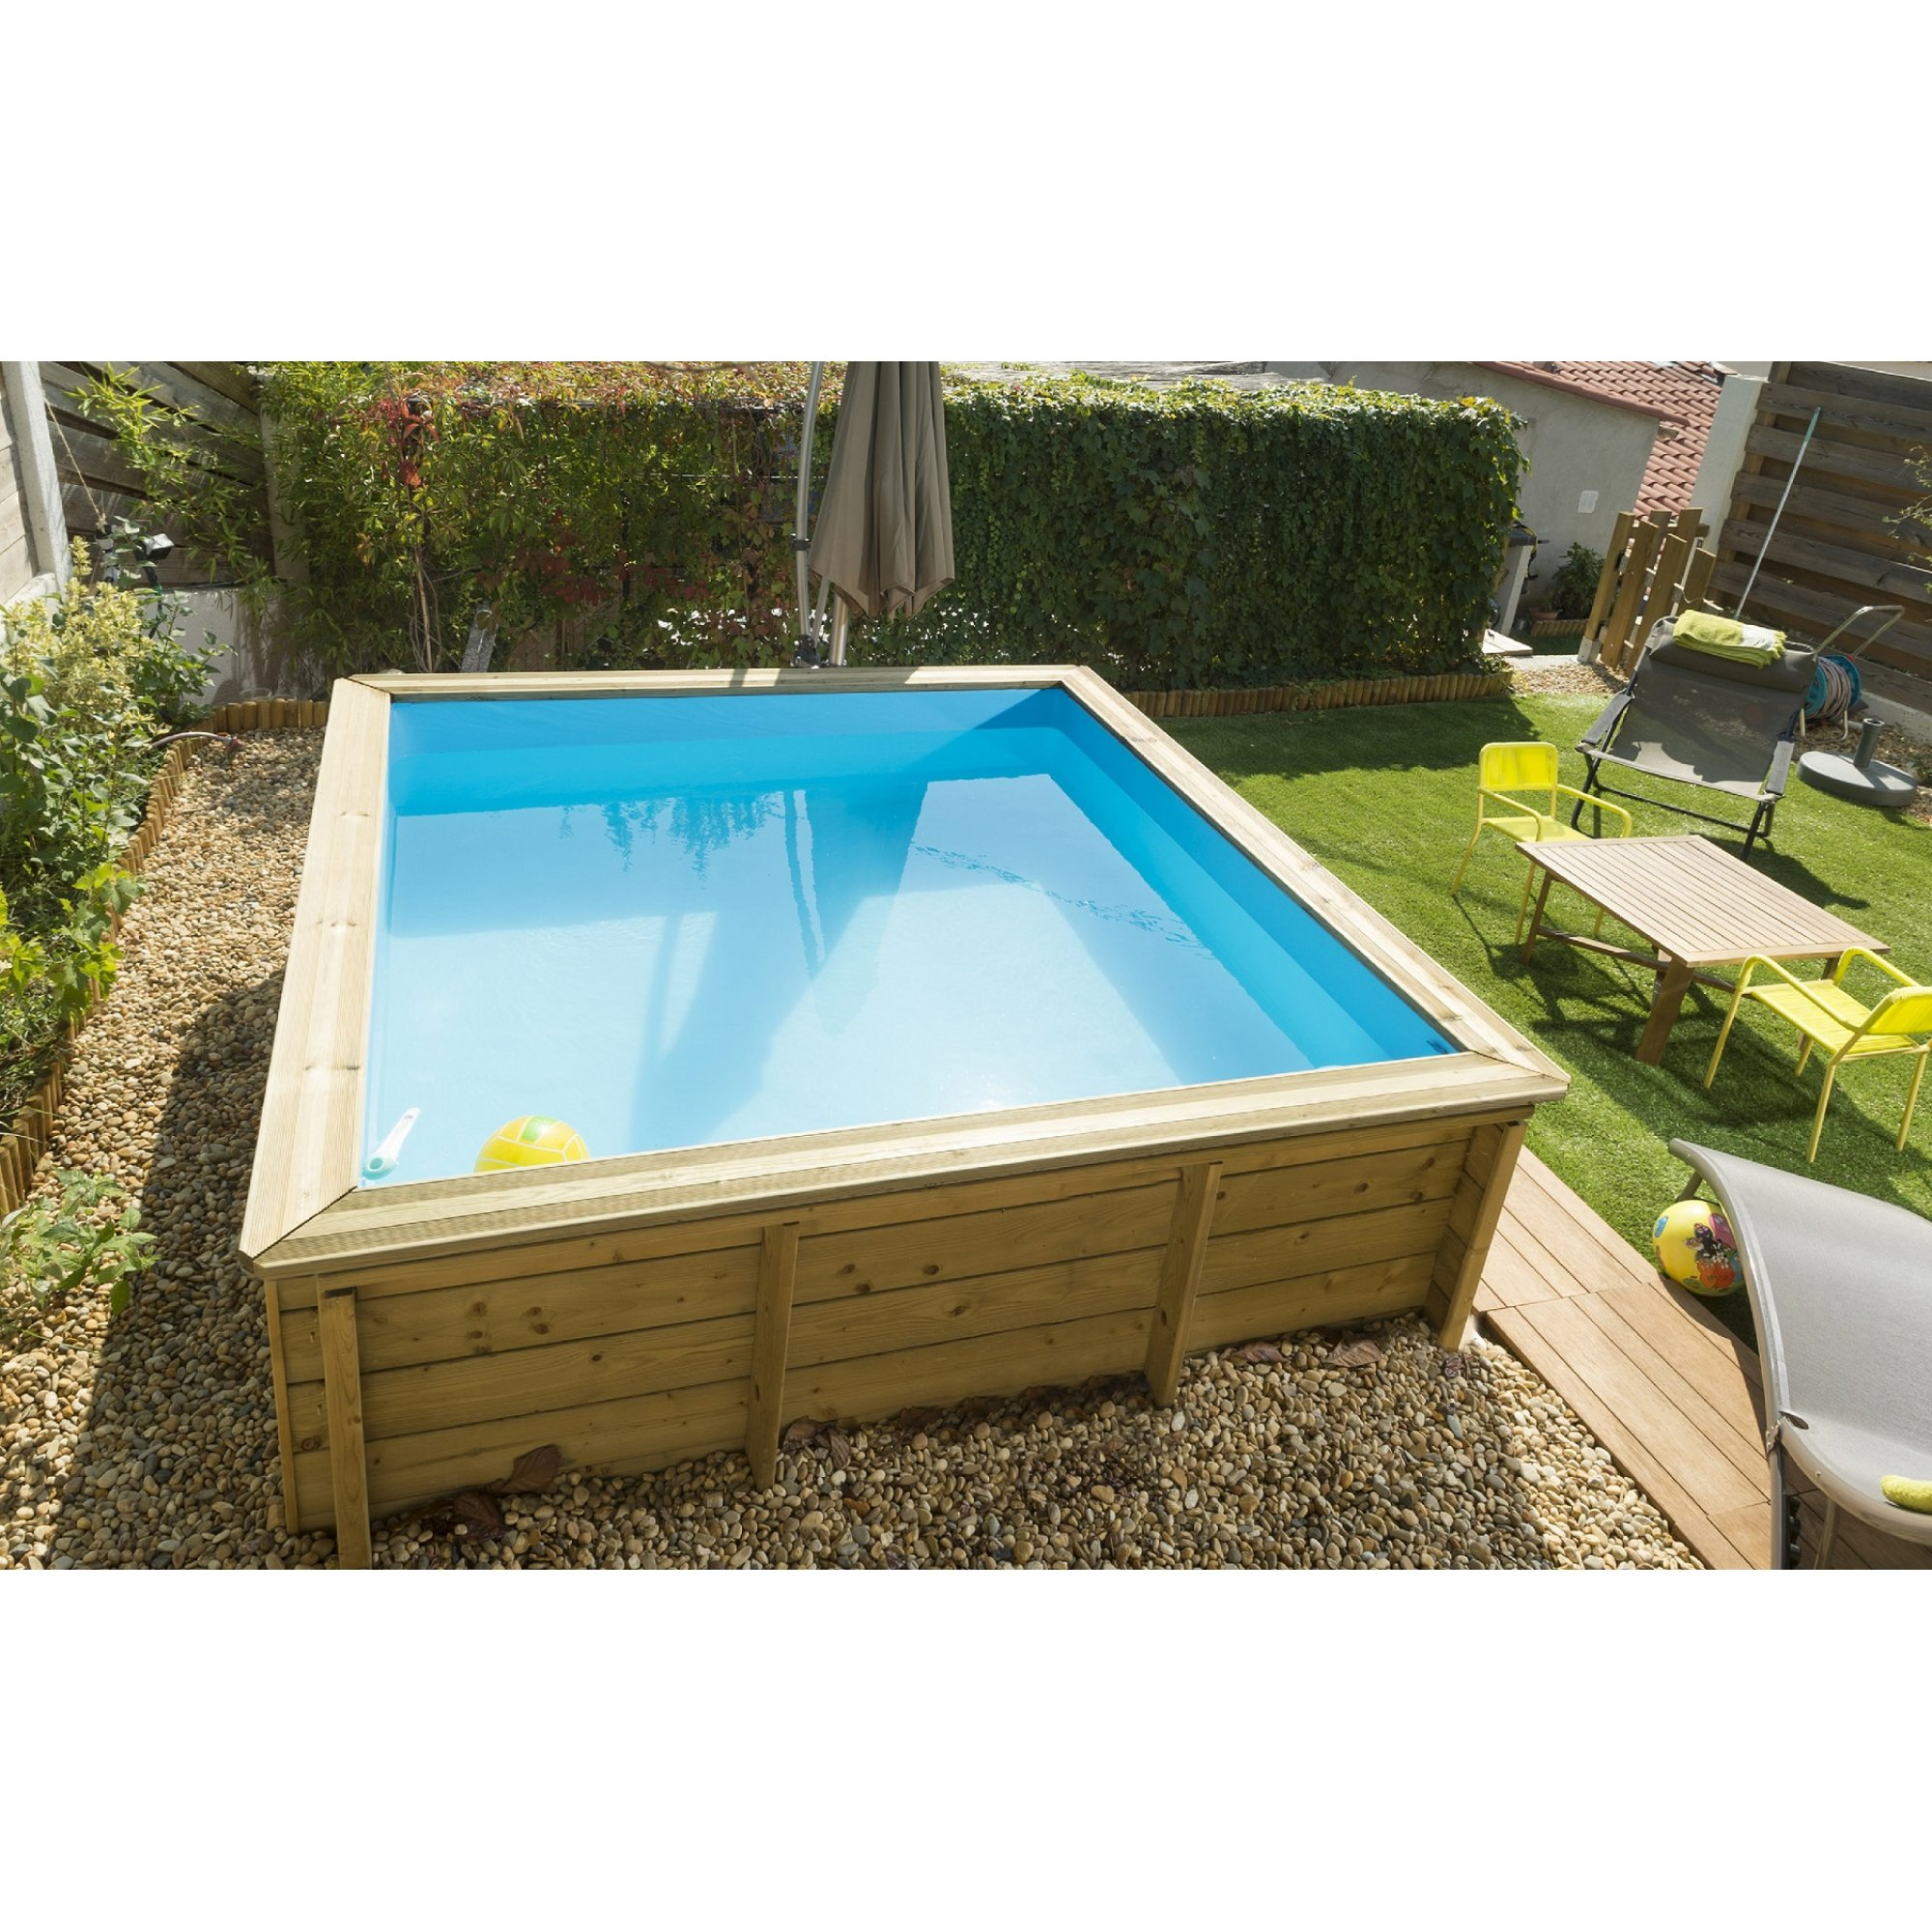 Mini holzpool f r jeden garten 679 00 for Mini piscine bois enterree